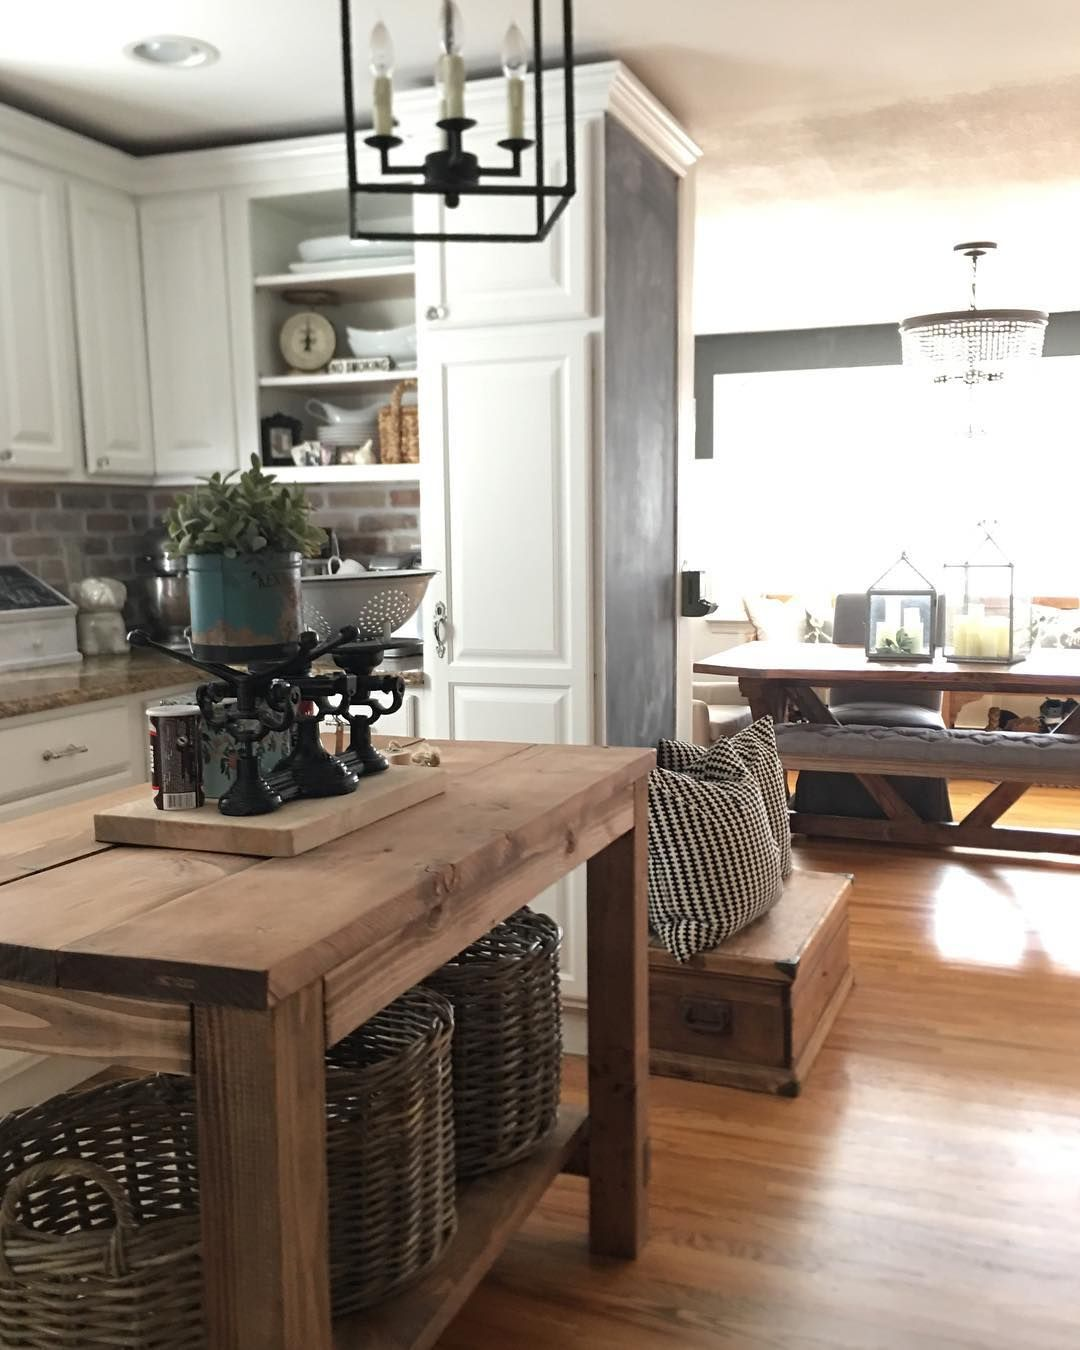 Pin by Holly James on Kitchen | Pinterest | Lisa, Kitchens and House